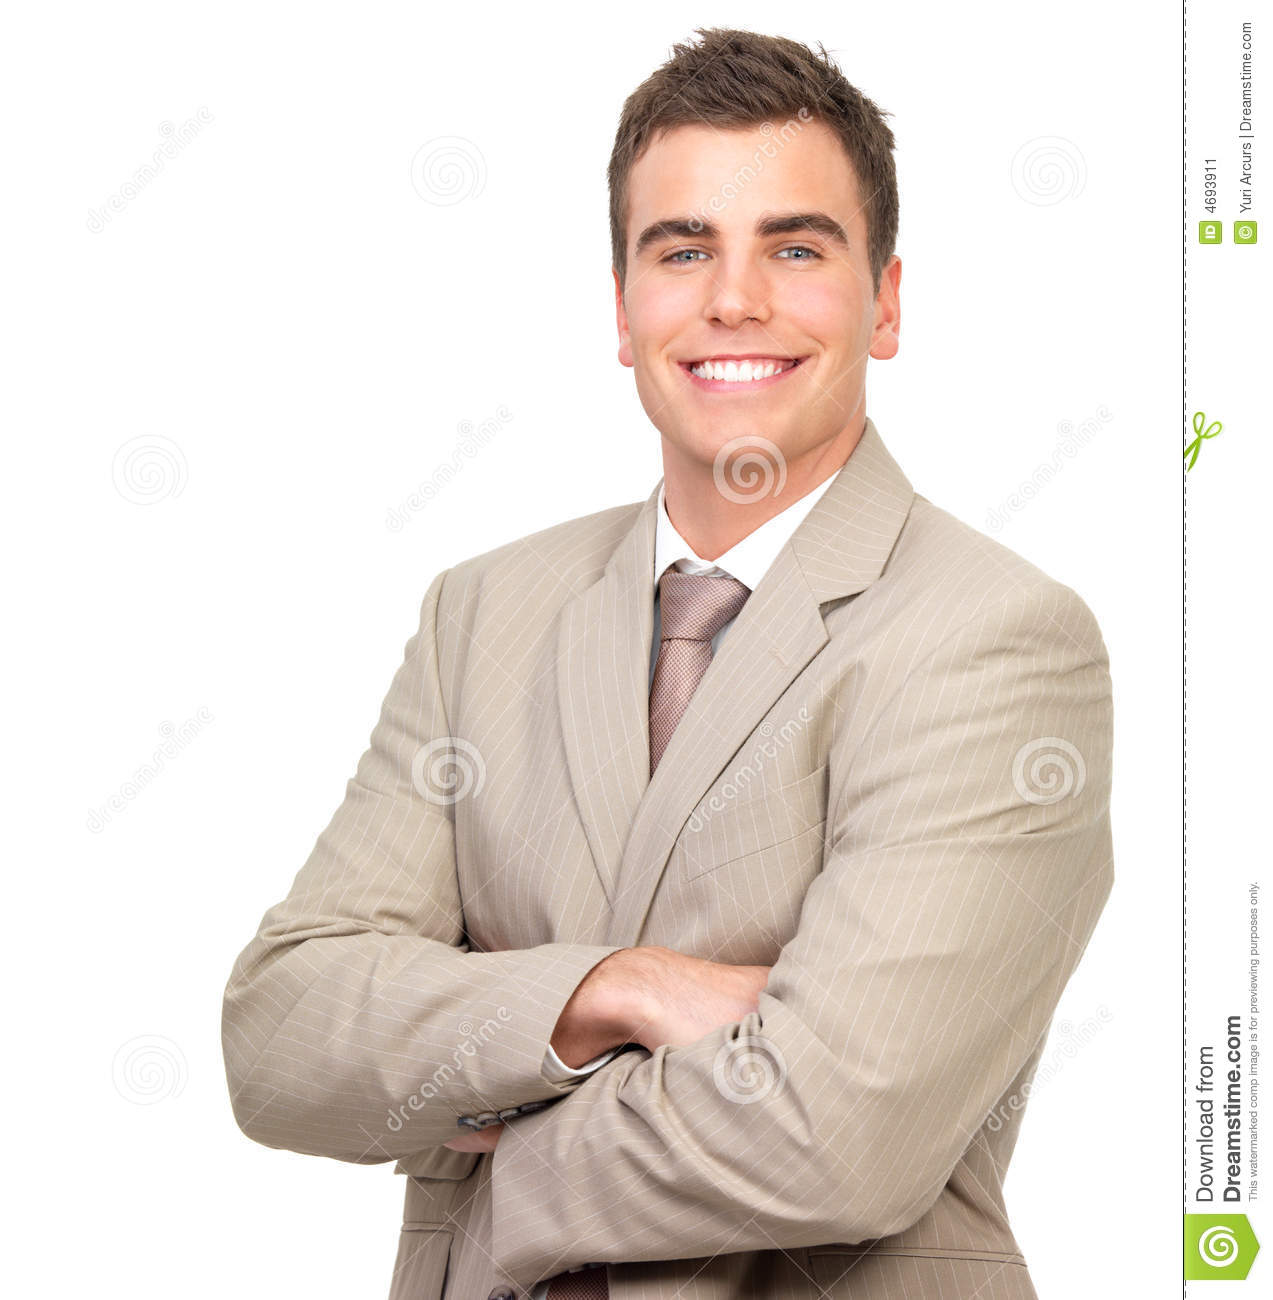 business-man-standing-arms-crossed-smiling-4693911.jpg